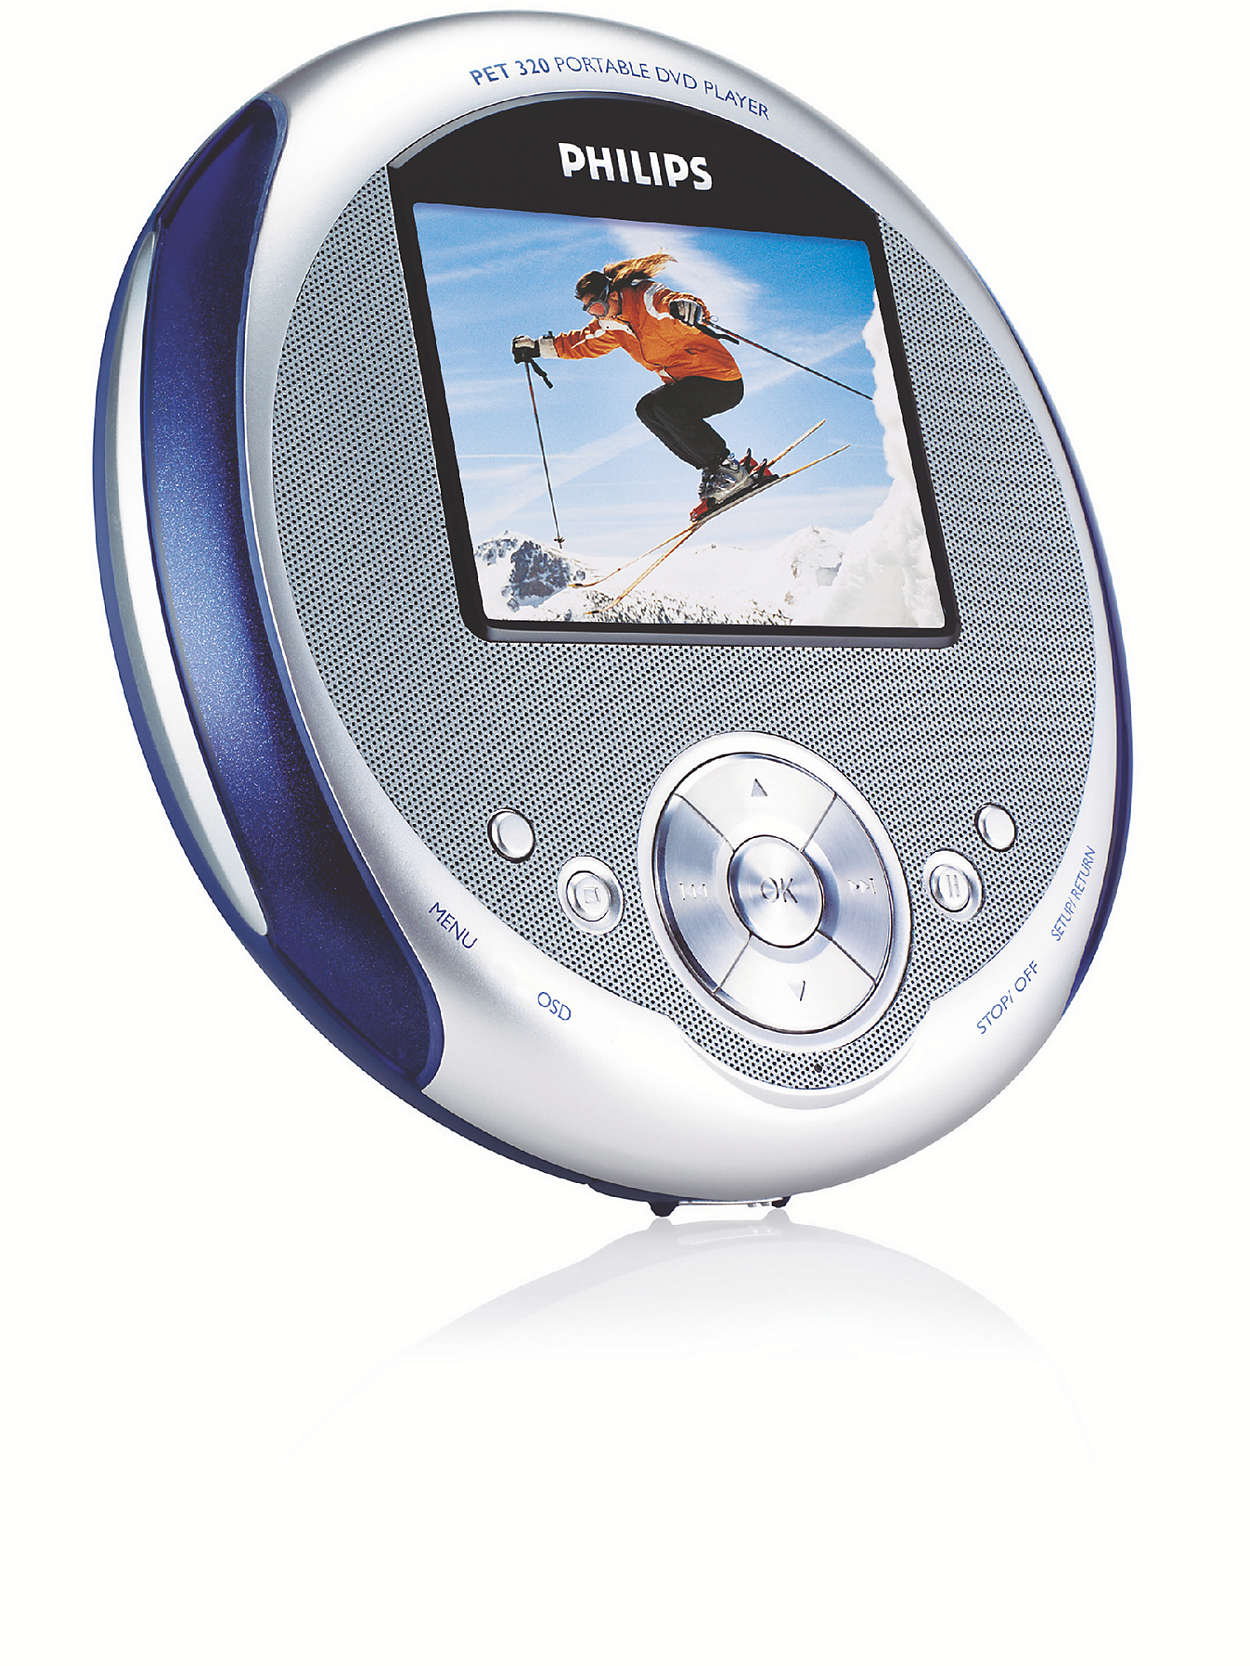 Portable Dvd Player Pet320 37 Philips